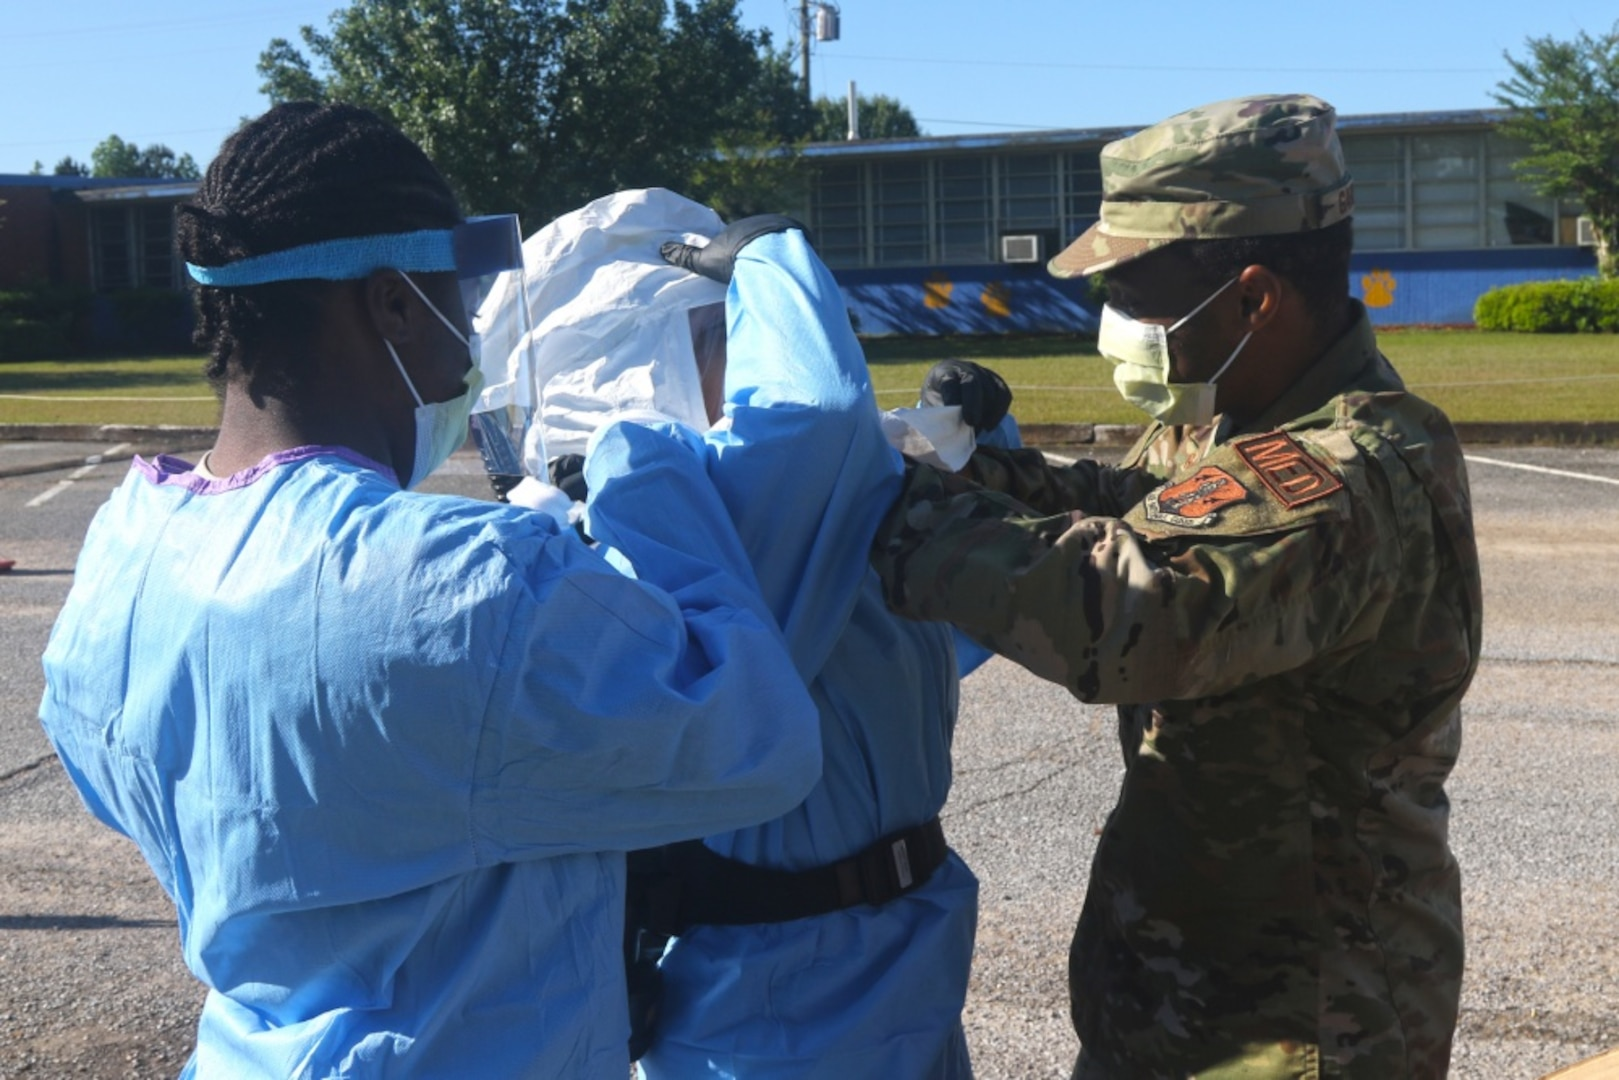 Airmen assigned to the 186th Air Refueling Wing, Mississippi Air National Guard, help U.S. Air Force Tech. Sgt. Adriana Campbell-Page, COVID-19 test administrator, put on her personal protection equipment at a mobile testing site in De Kalb, Miss., Apr. 24, 2020. The DLA Troop Support Medical PPE team earned Team of the Year Award for their 2020 COVID-19 support, and DLA Troop Support employees Linnette De La Cruz and John Trunzo also earned Employee and Supervisor of the Year Awards, respectively, for their 2020 mission support.